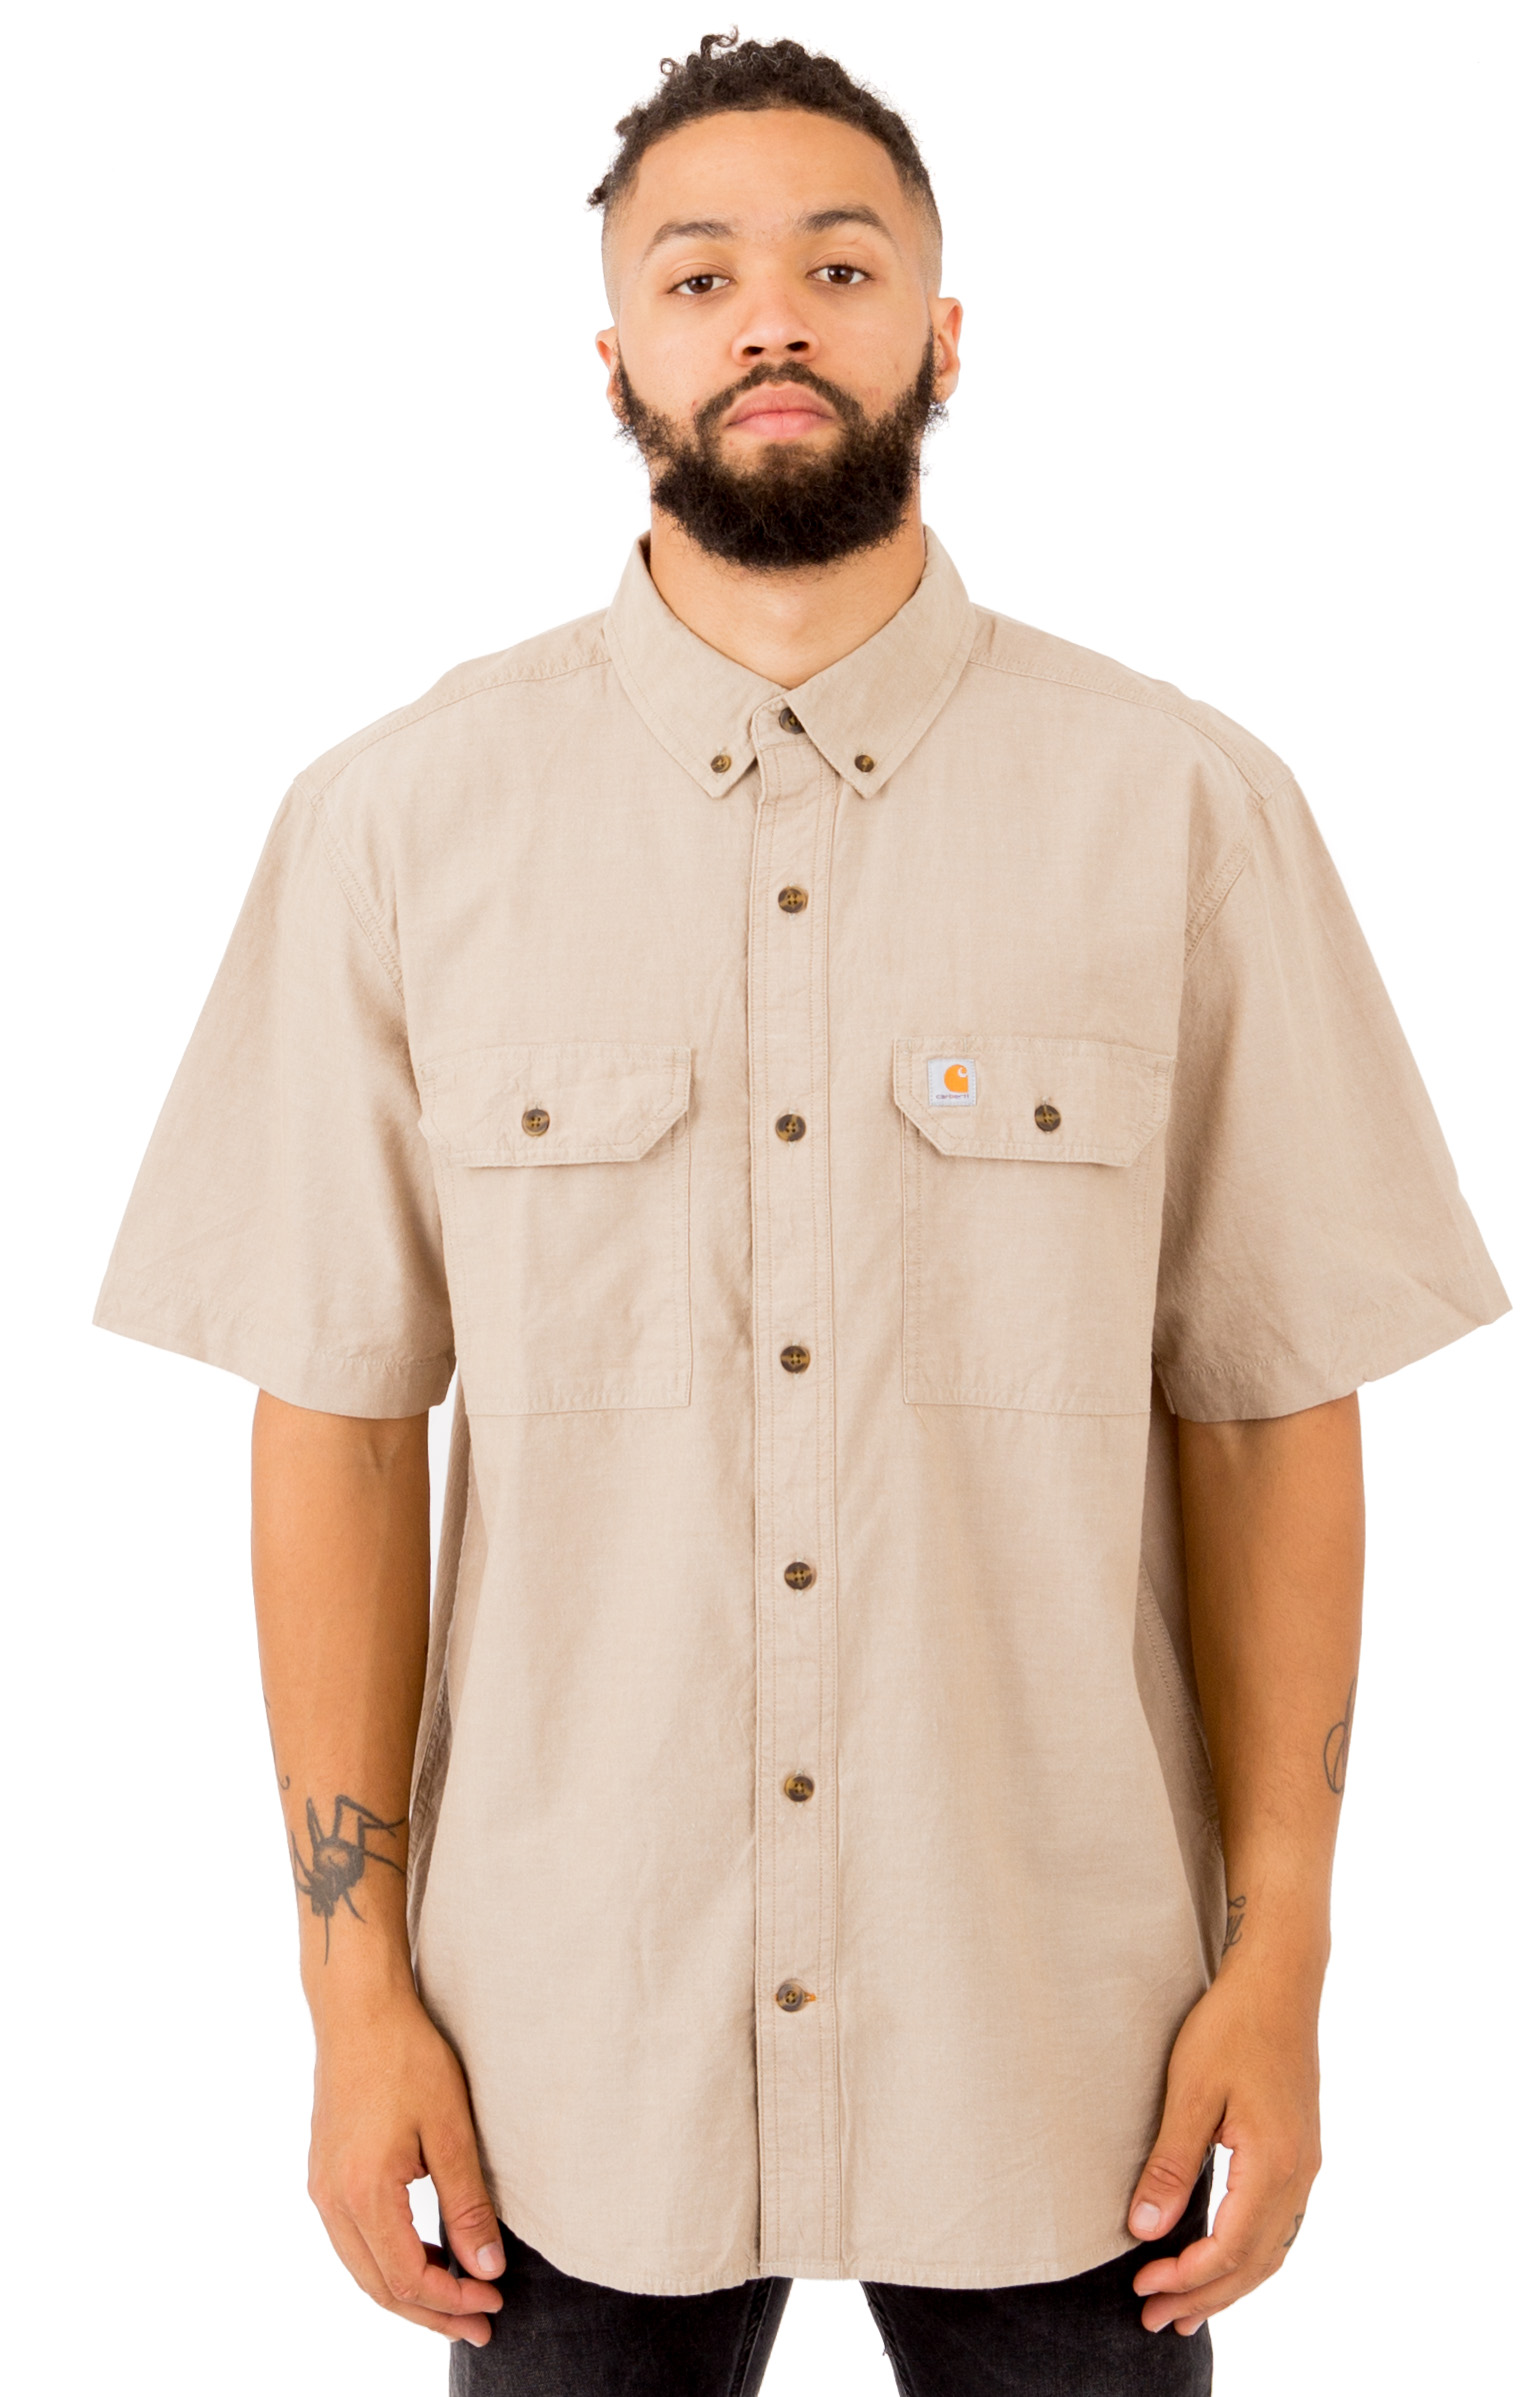 (S200) Fort S/S Chambray Button-Up Shirt - Dark Tan Chambray